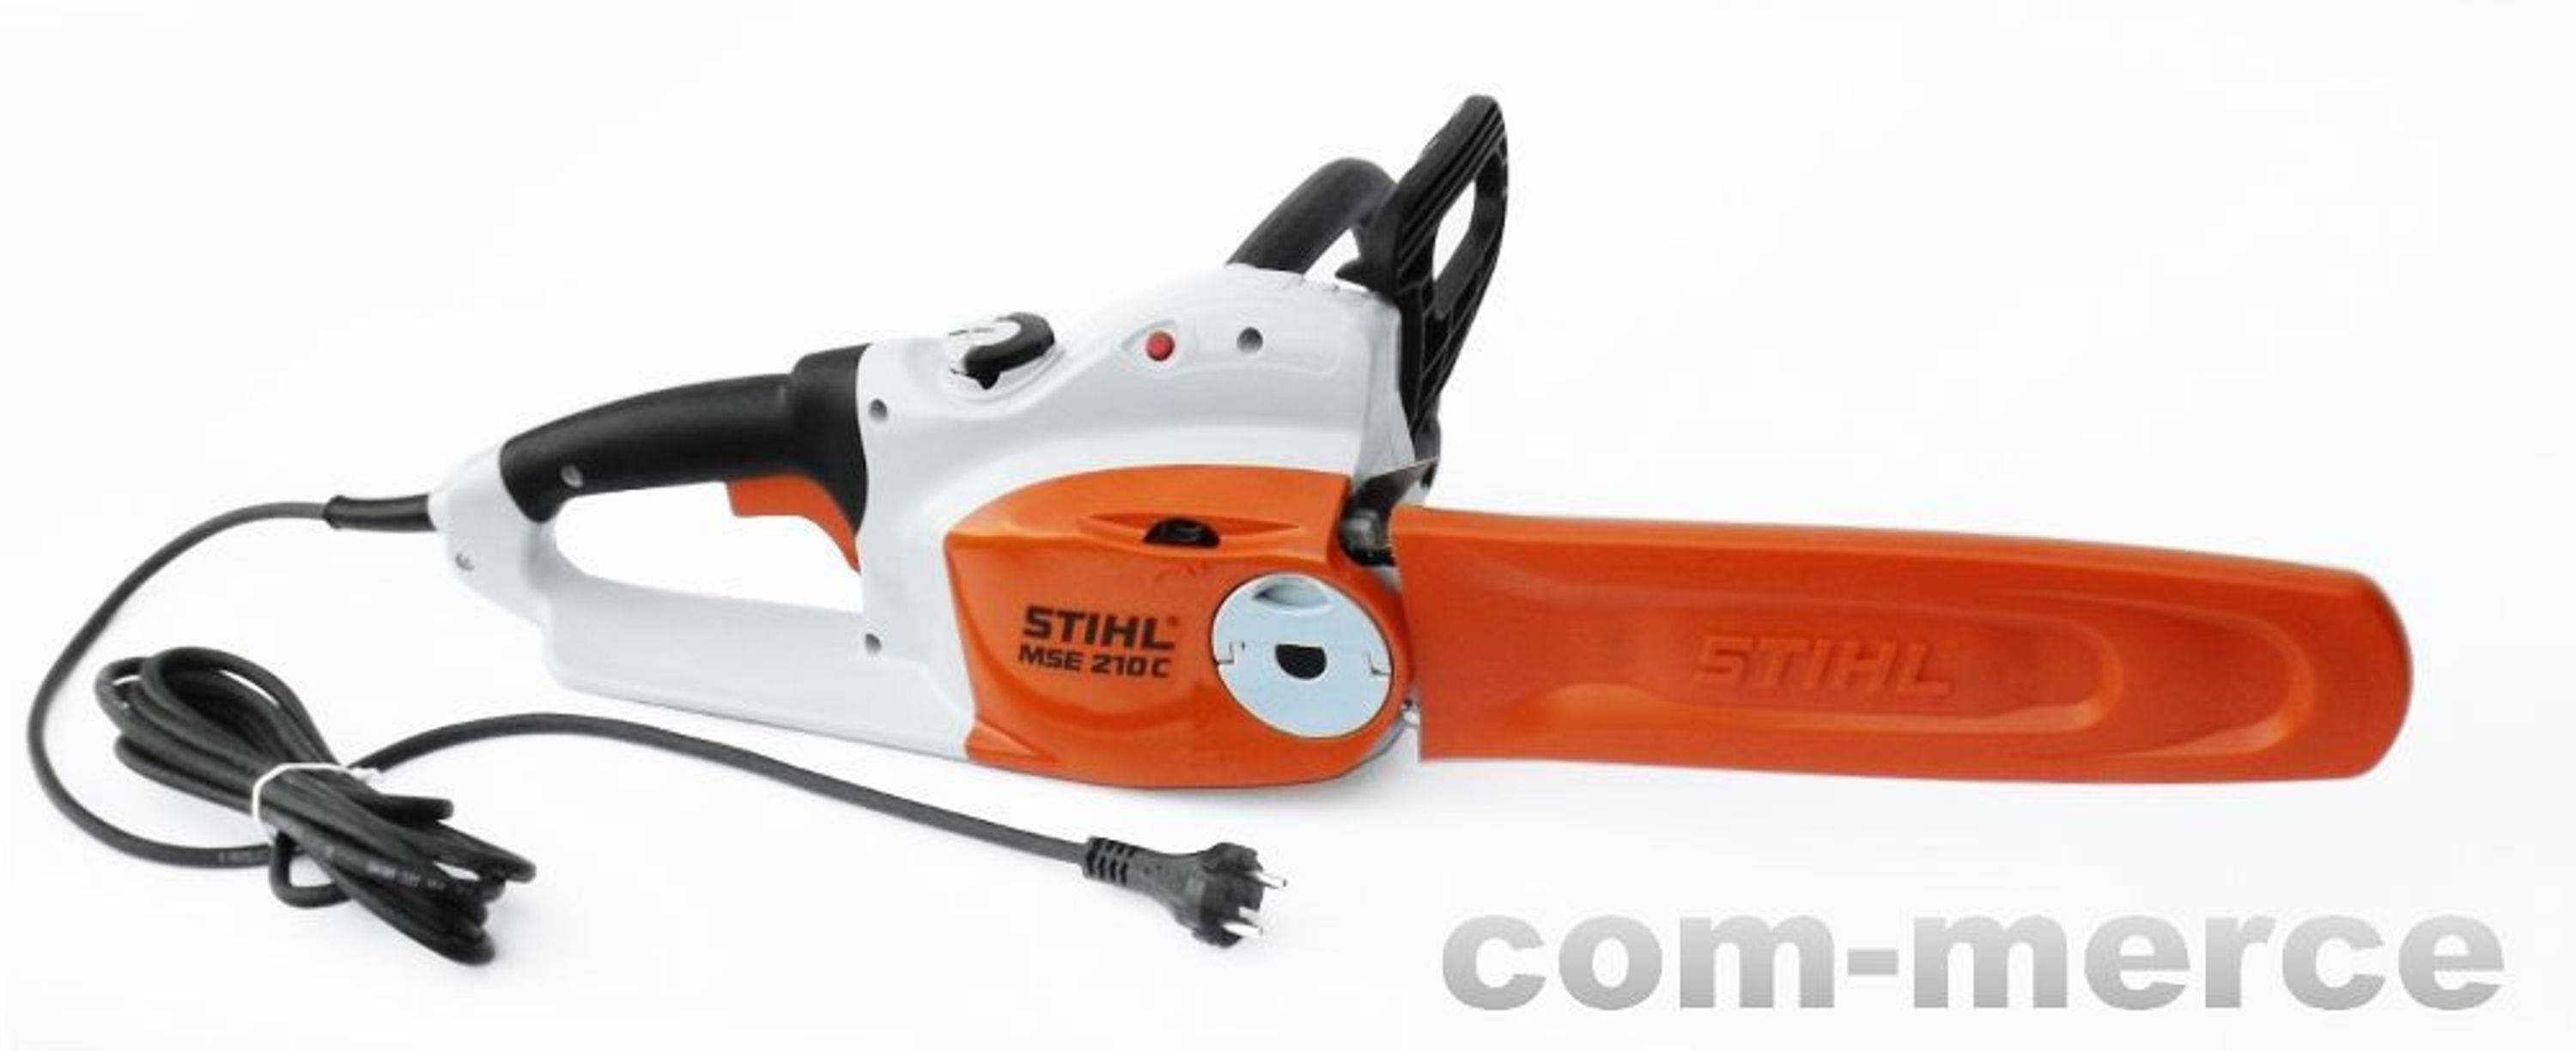 stihl kettens ge mse 210 c bq elektros ge elektro motors ge 30 35 40 cm kaufen bei. Black Bedroom Furniture Sets. Home Design Ideas